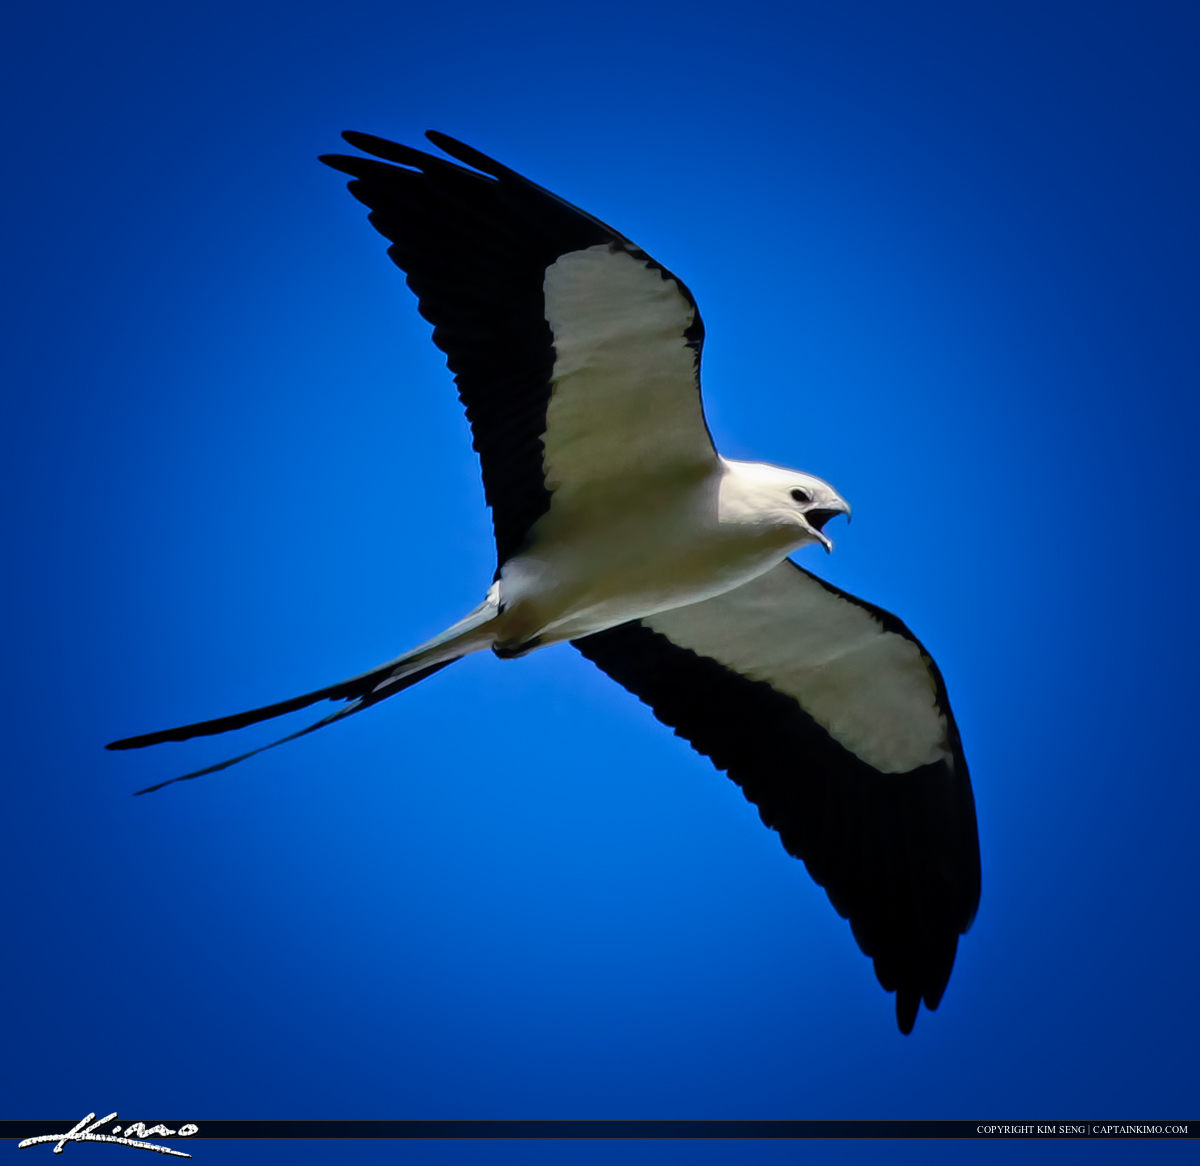 Swallow-tailed Kite Flying in Sky Looking for Food